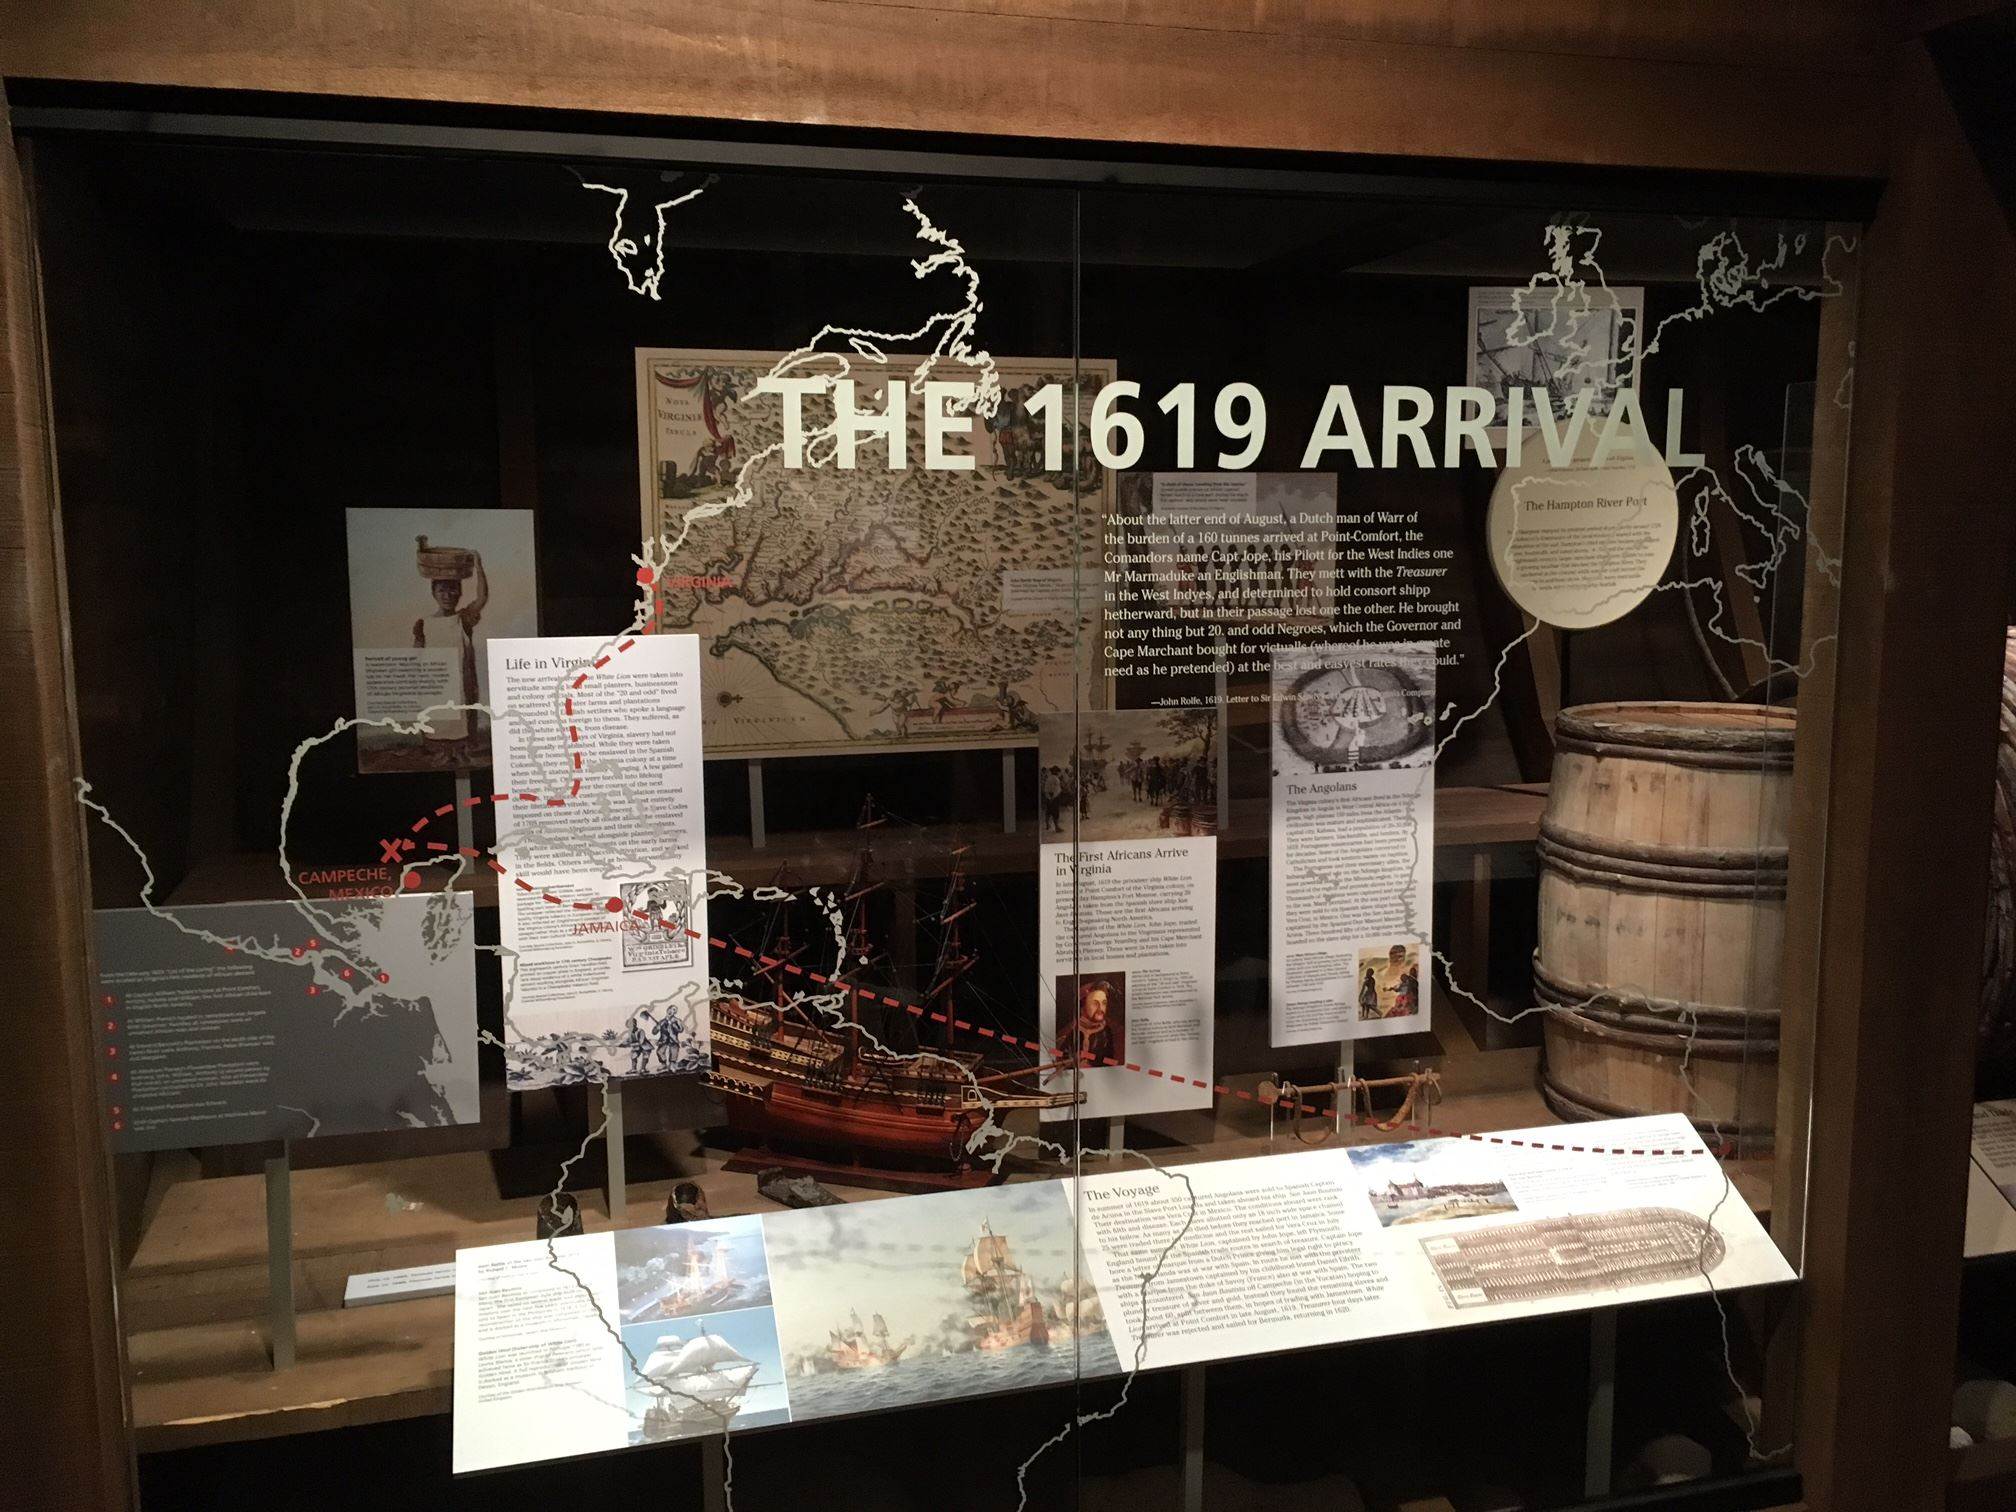 Photo of the 1619 Arrival Exhibit